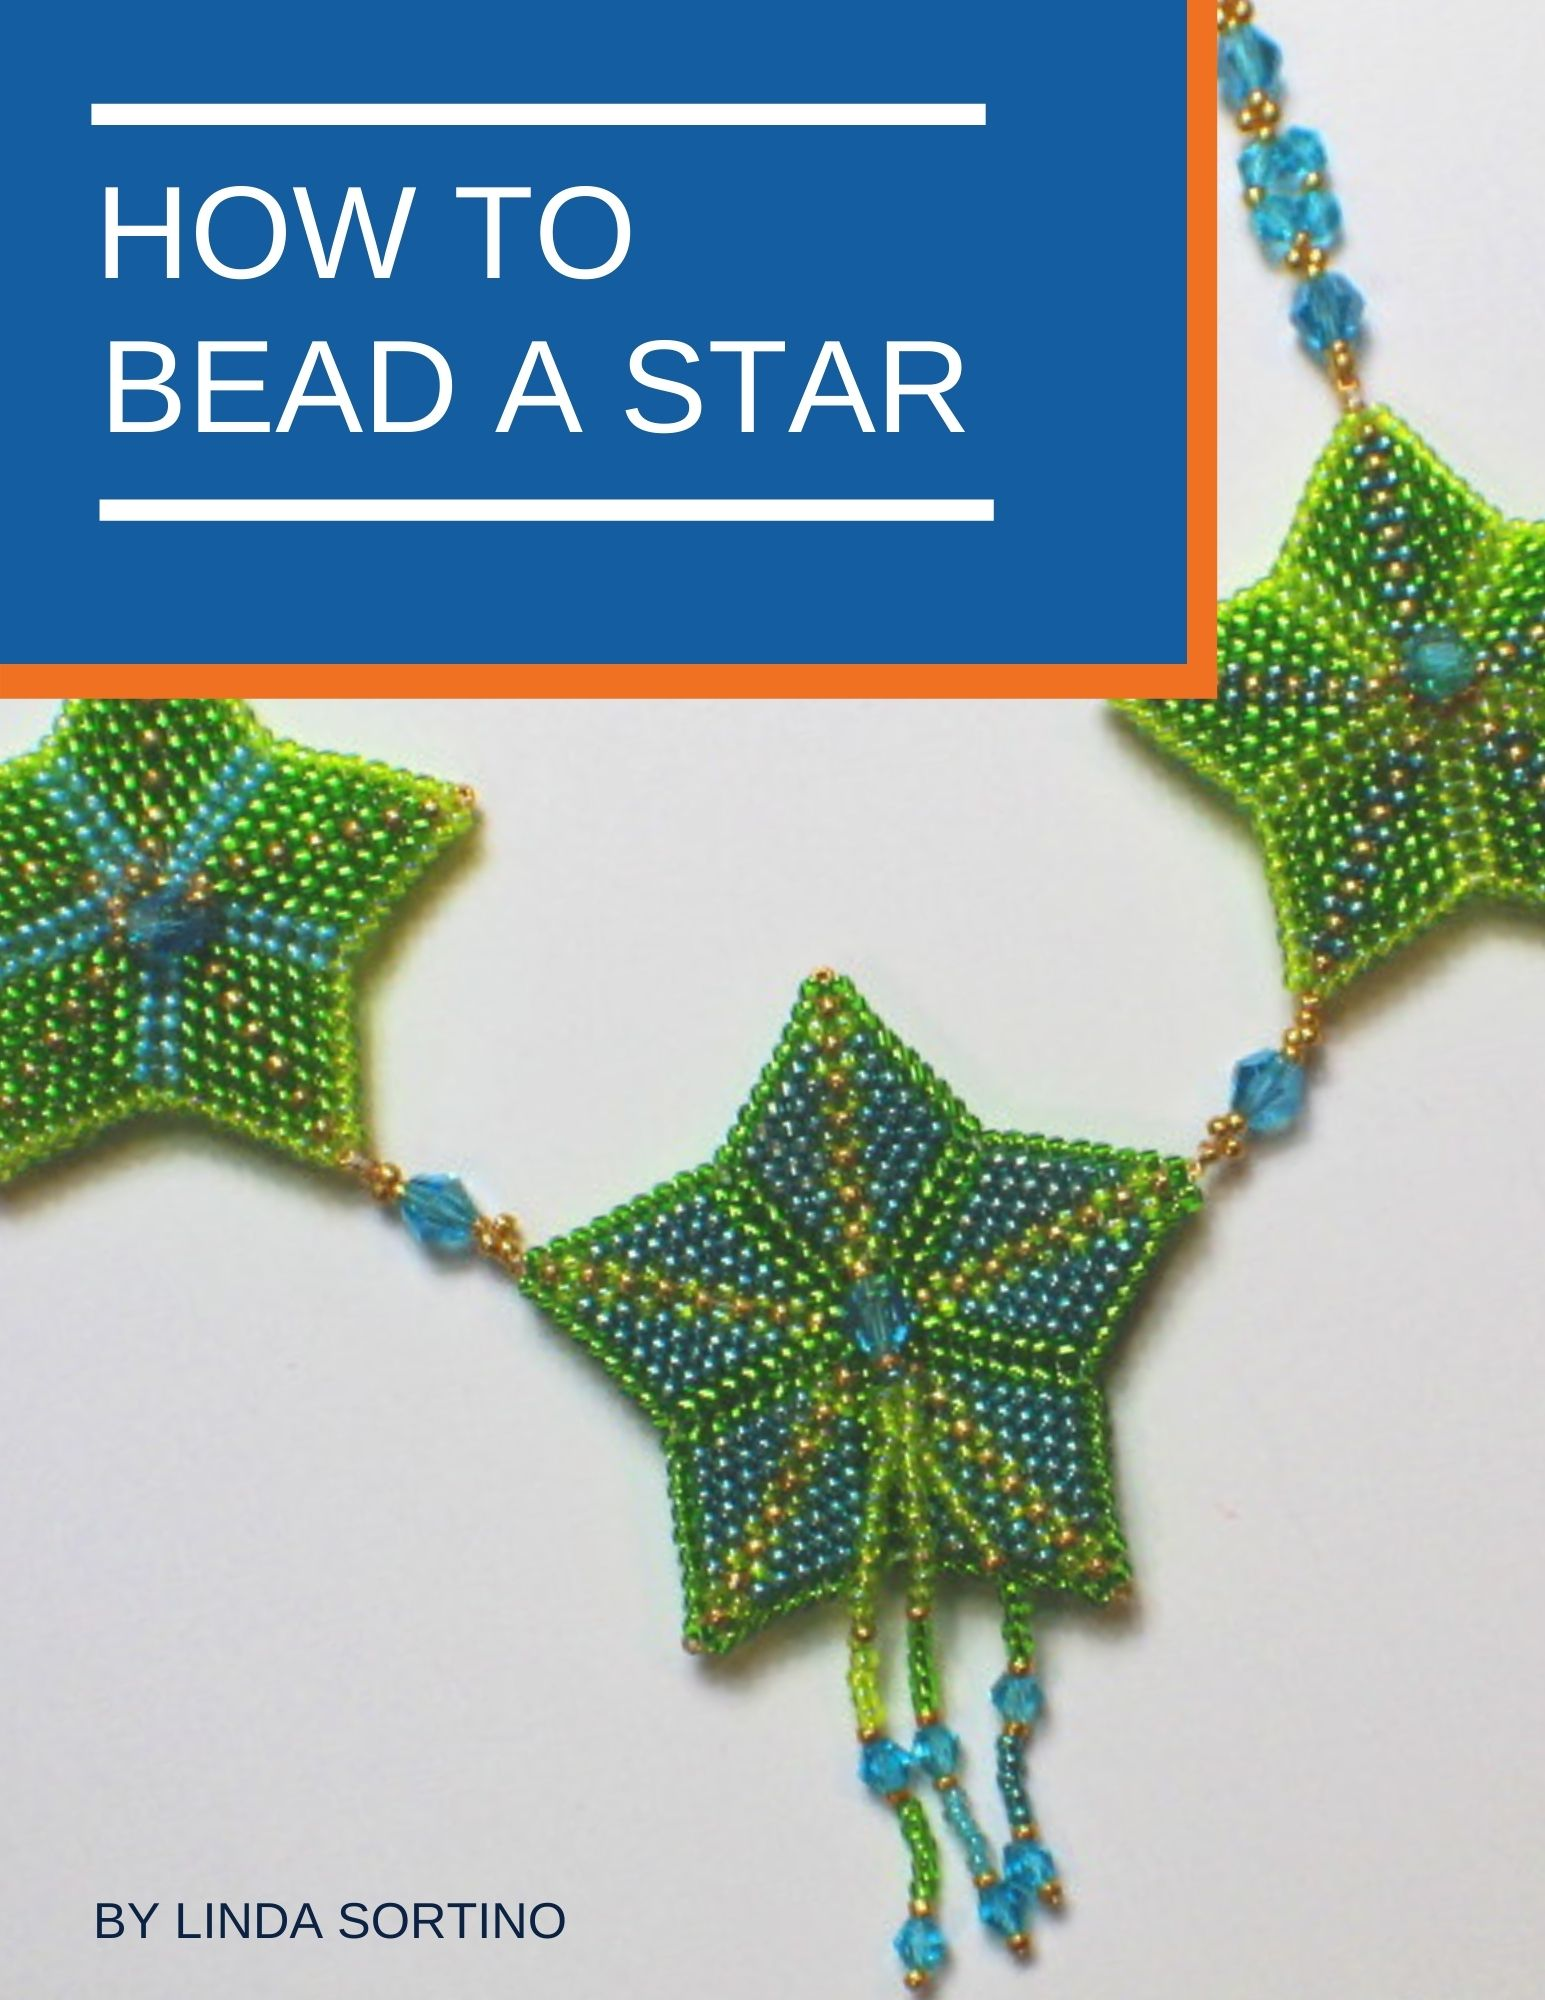 How to bead a star cover